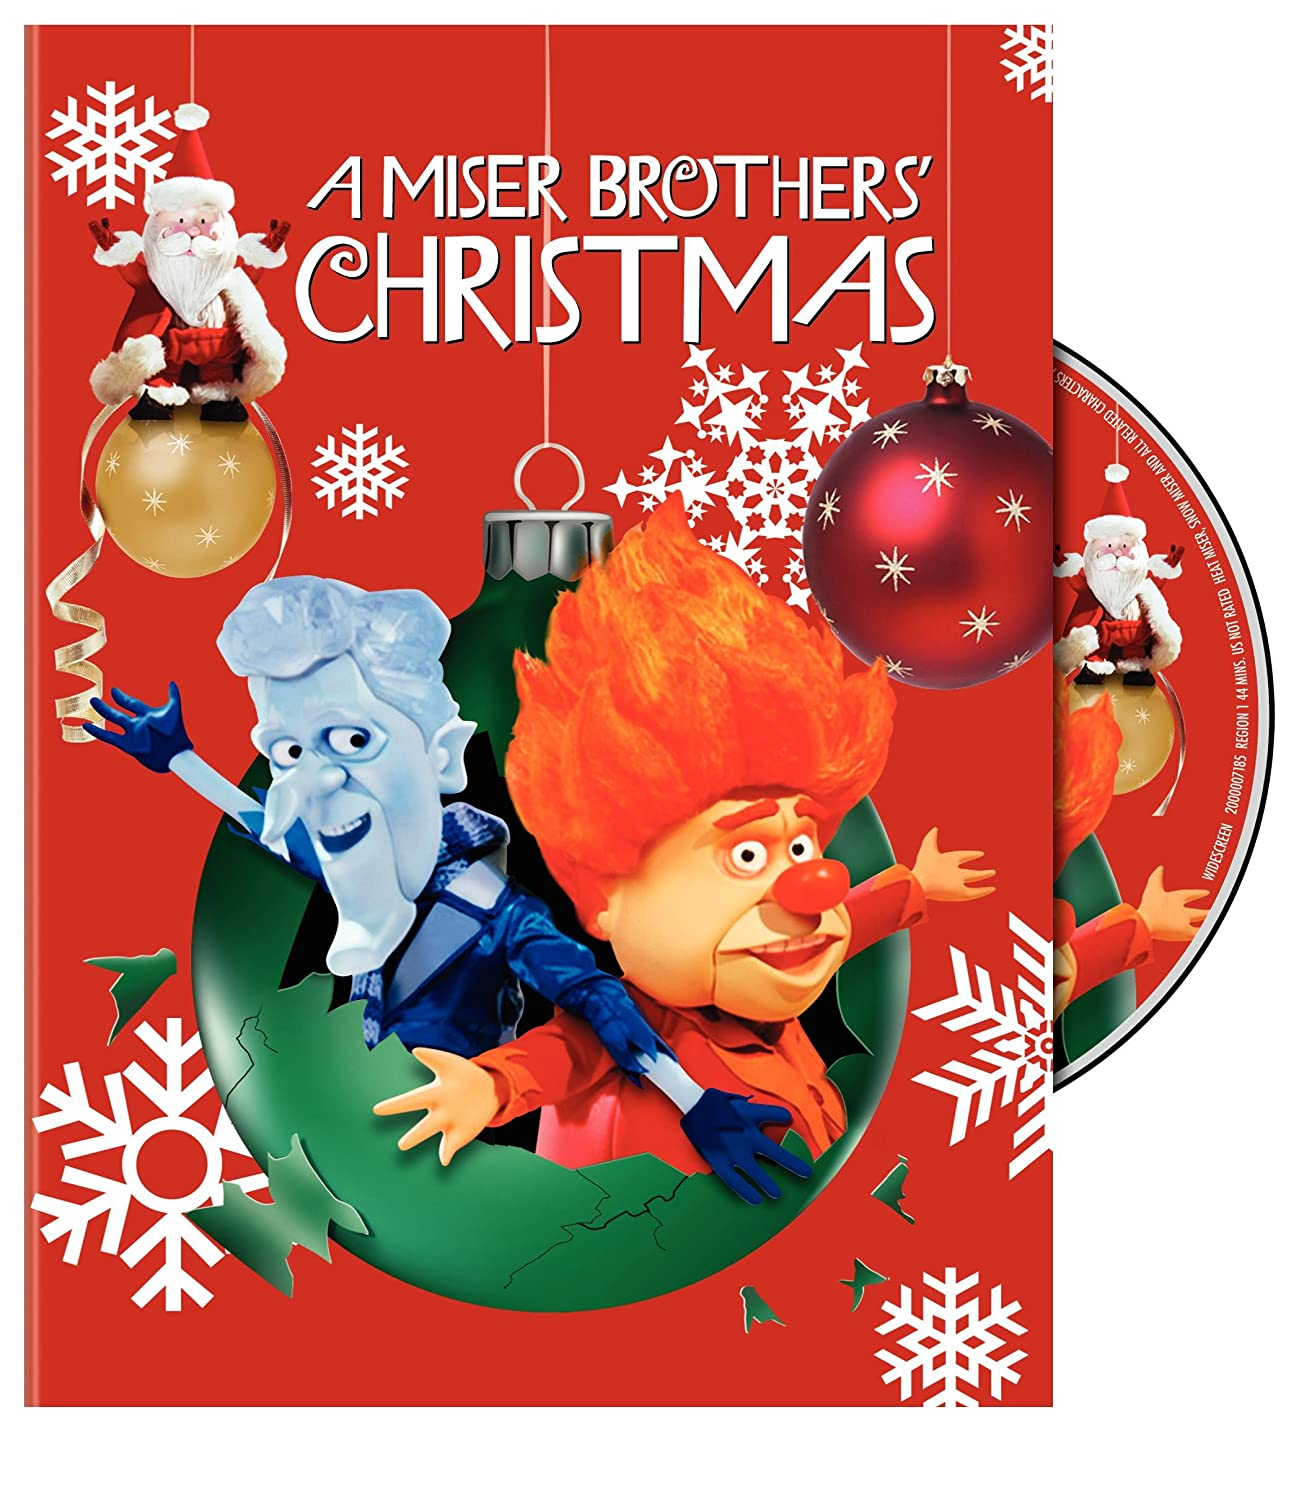 A Miser Brother's Christmas: Deluxe Edition Various Warner Bros. Home Video 5822721 Christmas / Chanukkah